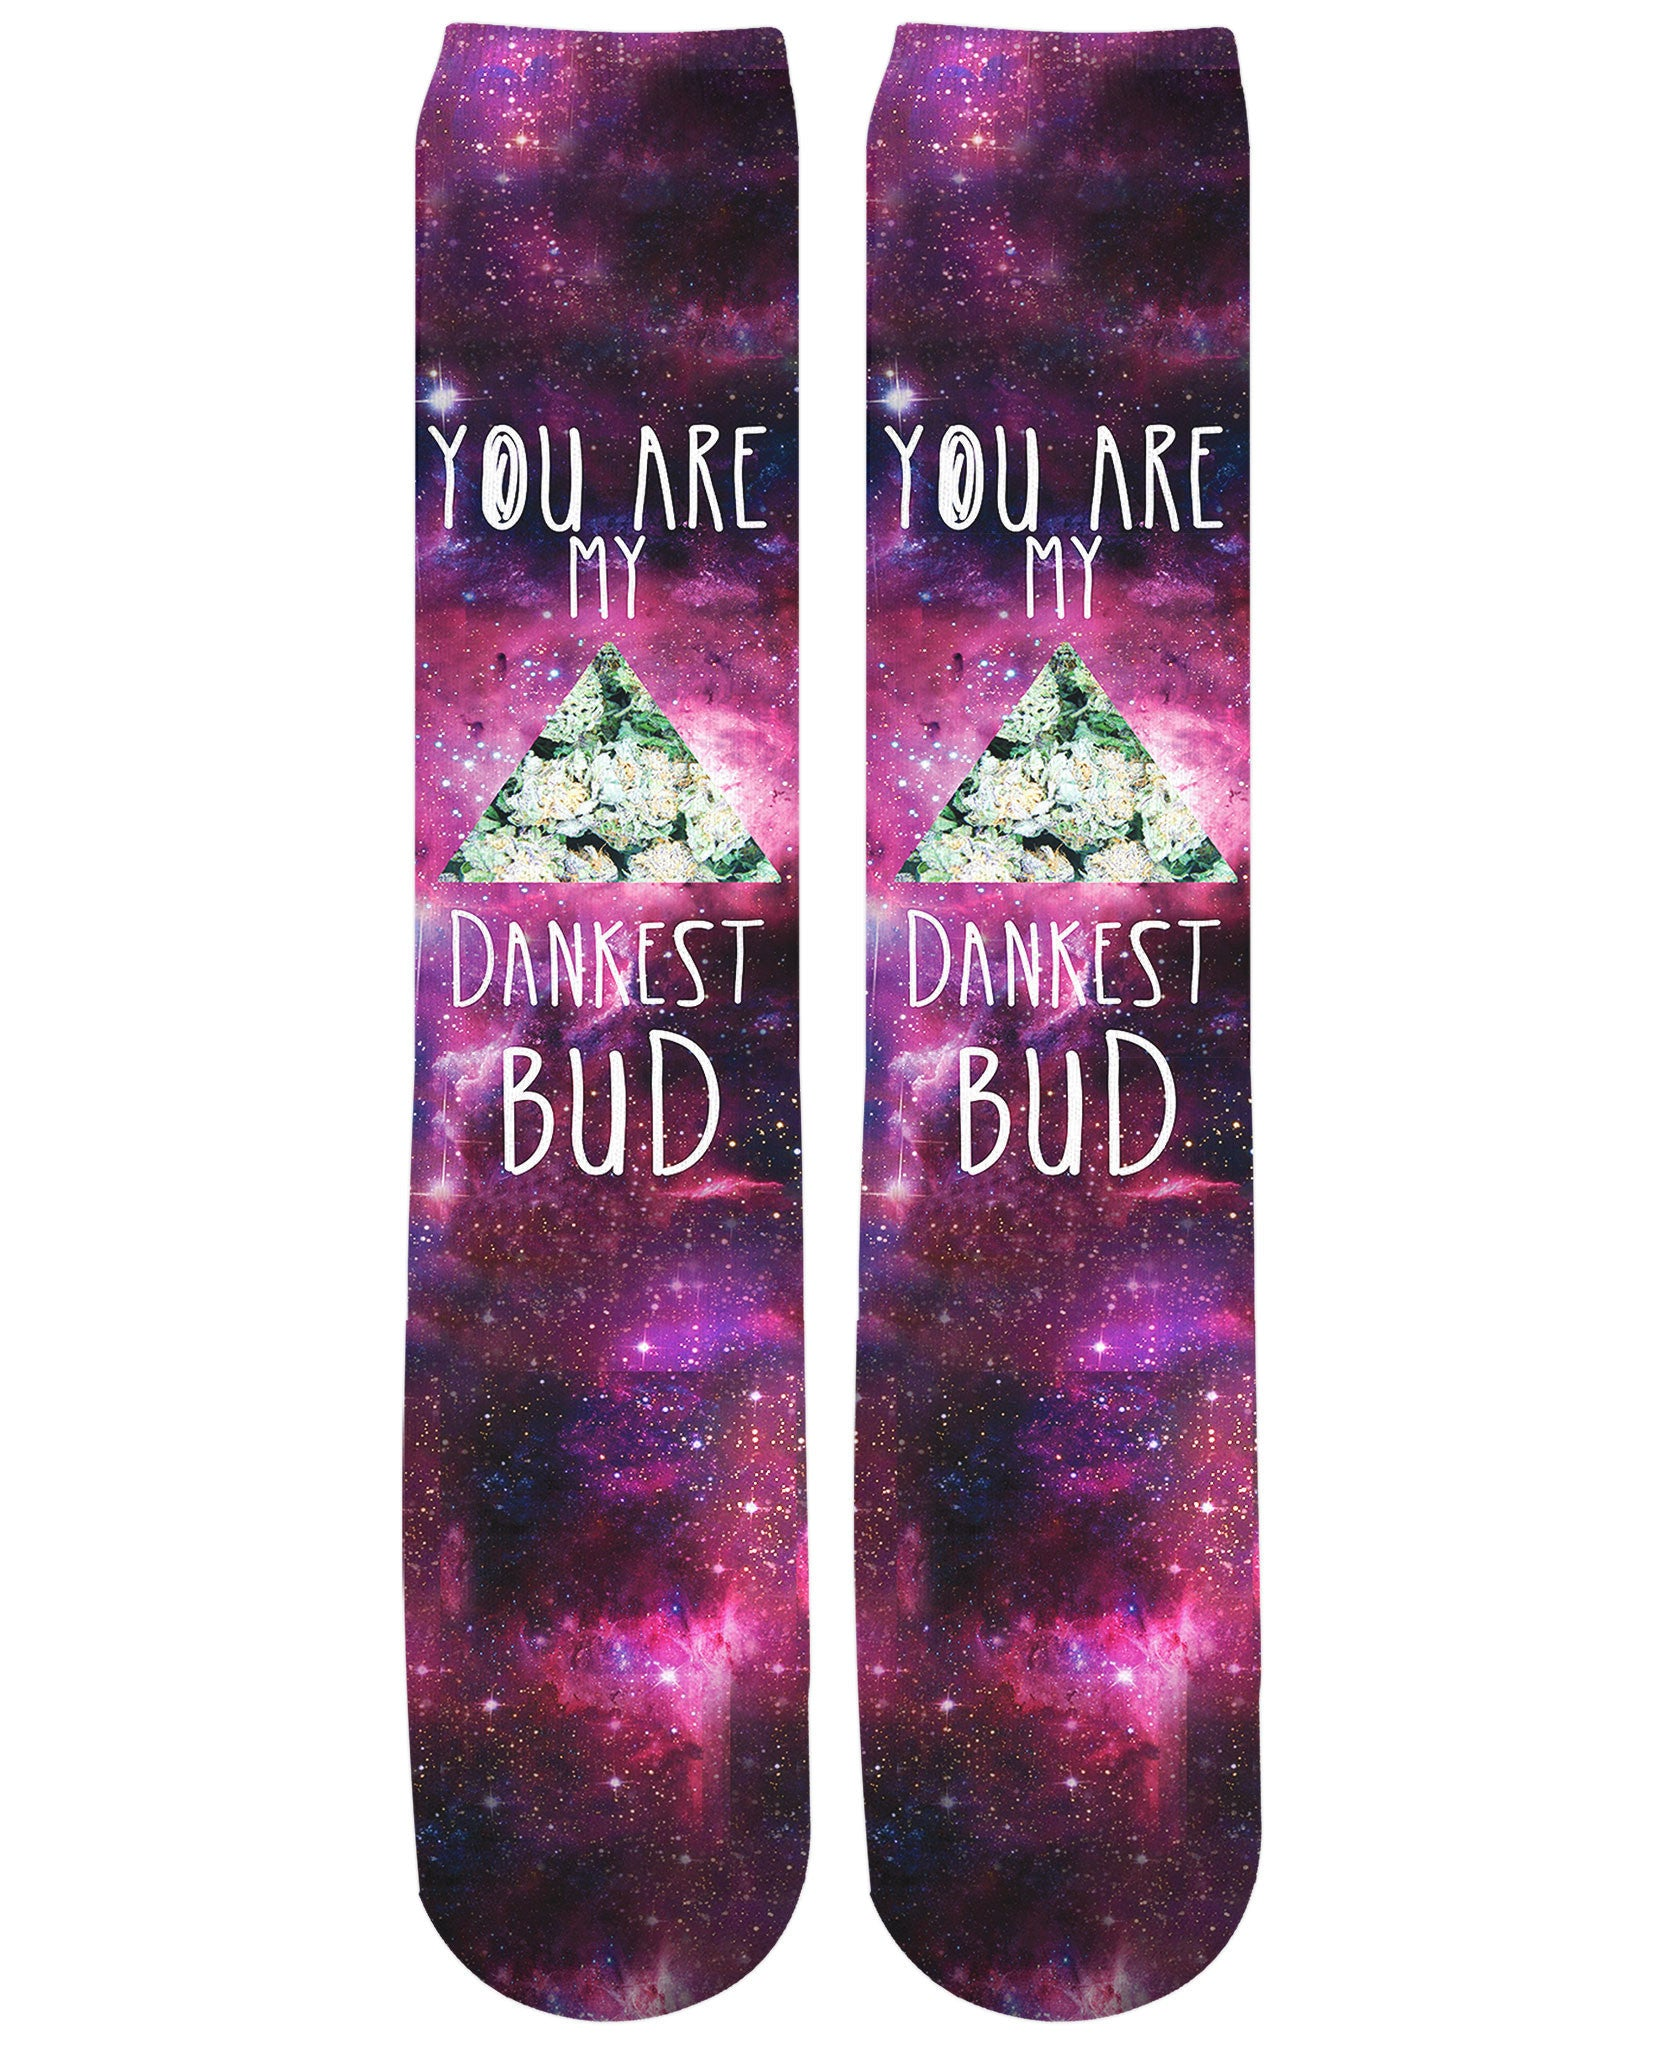 Dankest Bud Knee-High Socks - TShirtsRUS.co